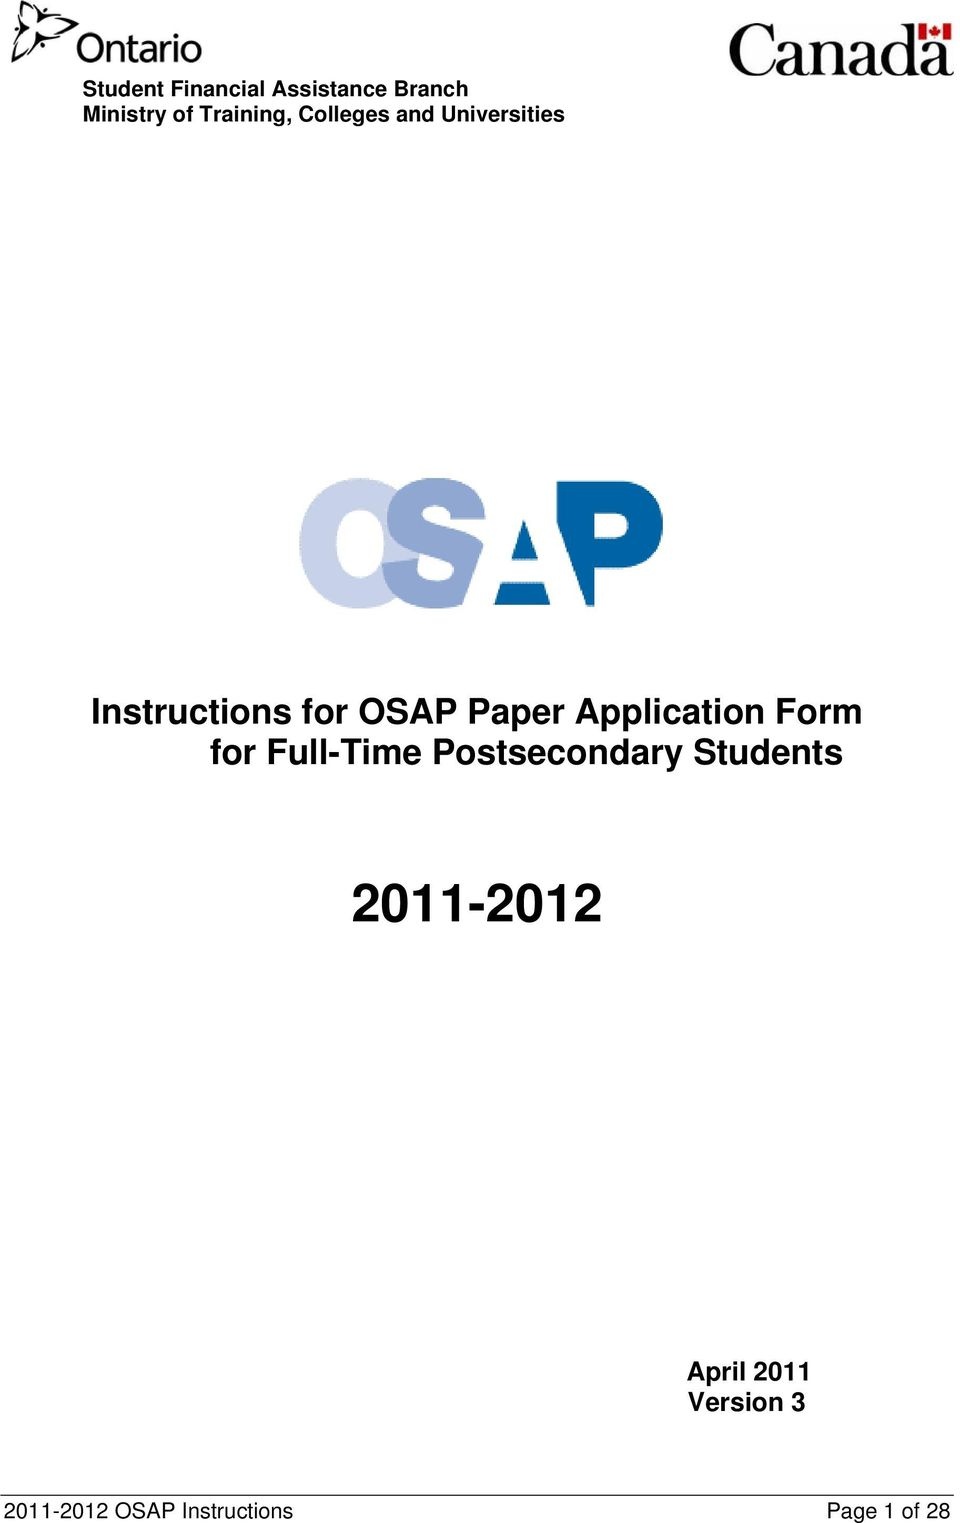 Application Form for Full-Time Postsecondary Students